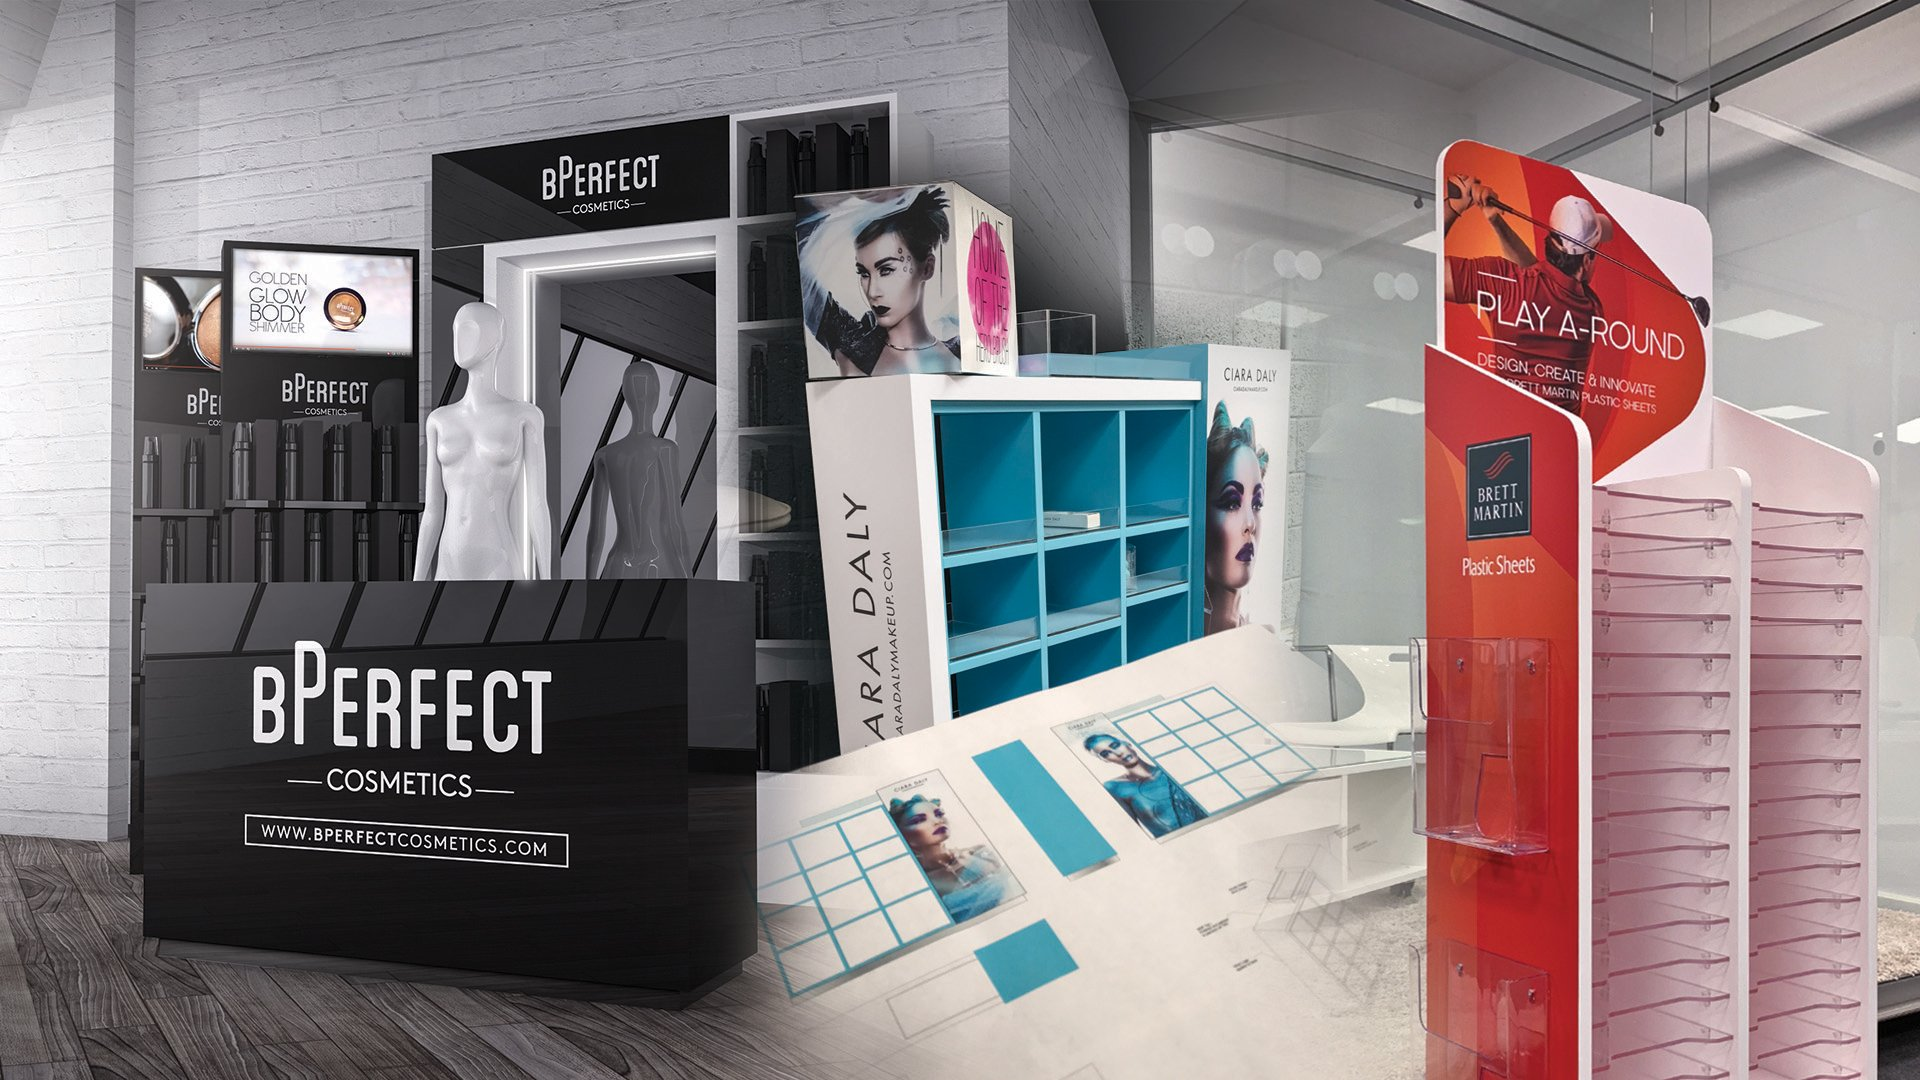 Point of Sale display units for Ciara Daly and Perfect in Belfast